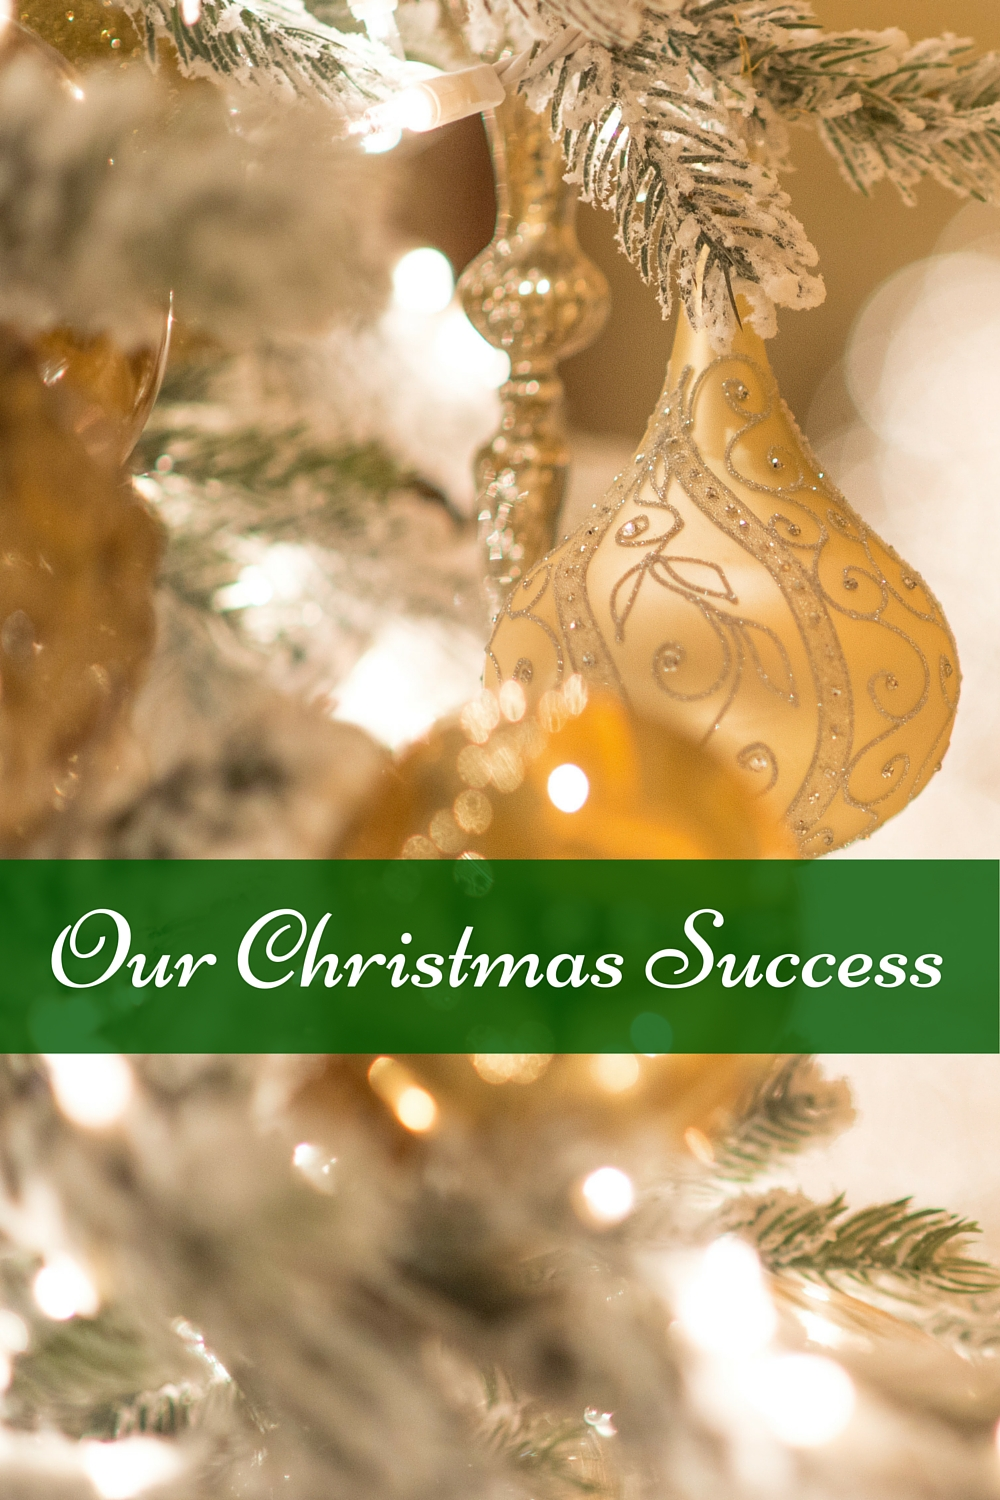 Here's how we had a successful (and under budget!) Christmas